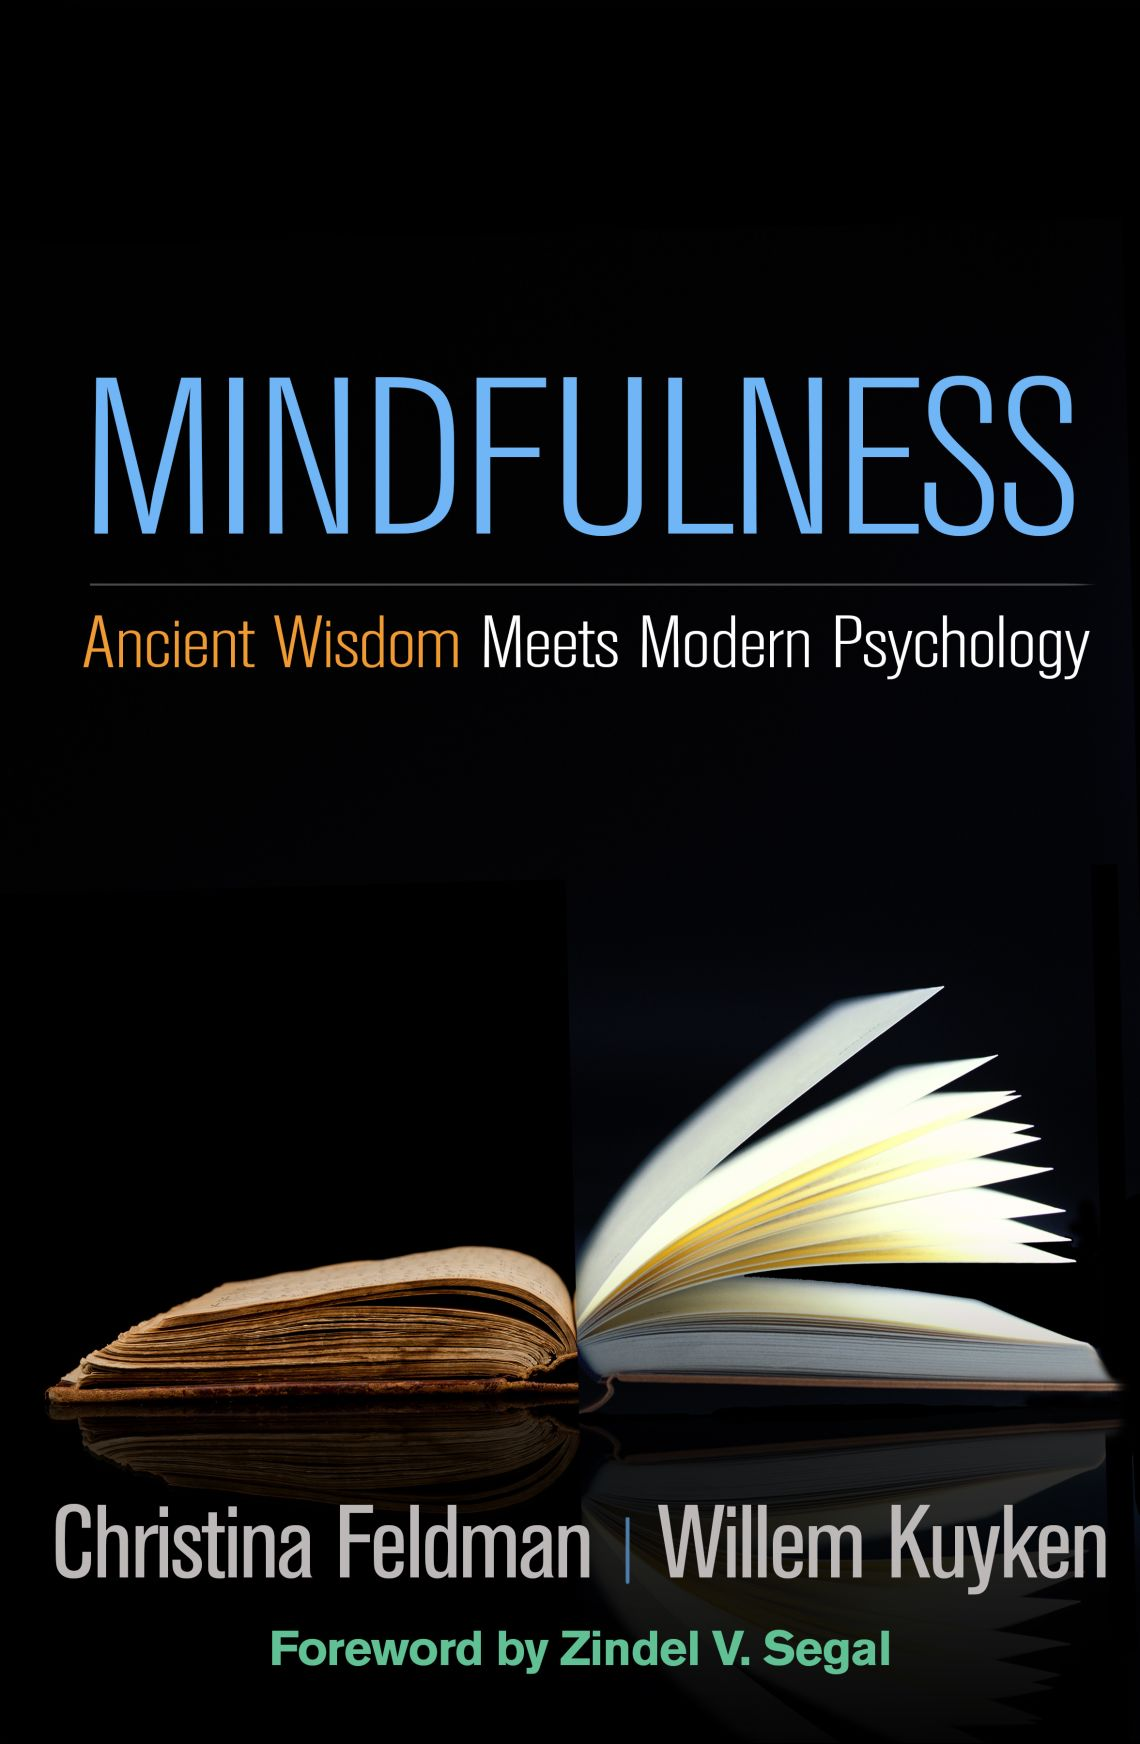 There has been an explosion of interest in mindfulness and its applications in the last twenty years. This book provides a much-needed map and route plan for anyone learning mindfulness and is an invaluable tool for those teaching or training to teach mindfulness. It brings together psychological science and early Buddhist teachings to help us better understand the nature of distress so that we can bring suffering to an end. More than this, it considers how people can flourish in the midst of the challenges of the contemporary world. 